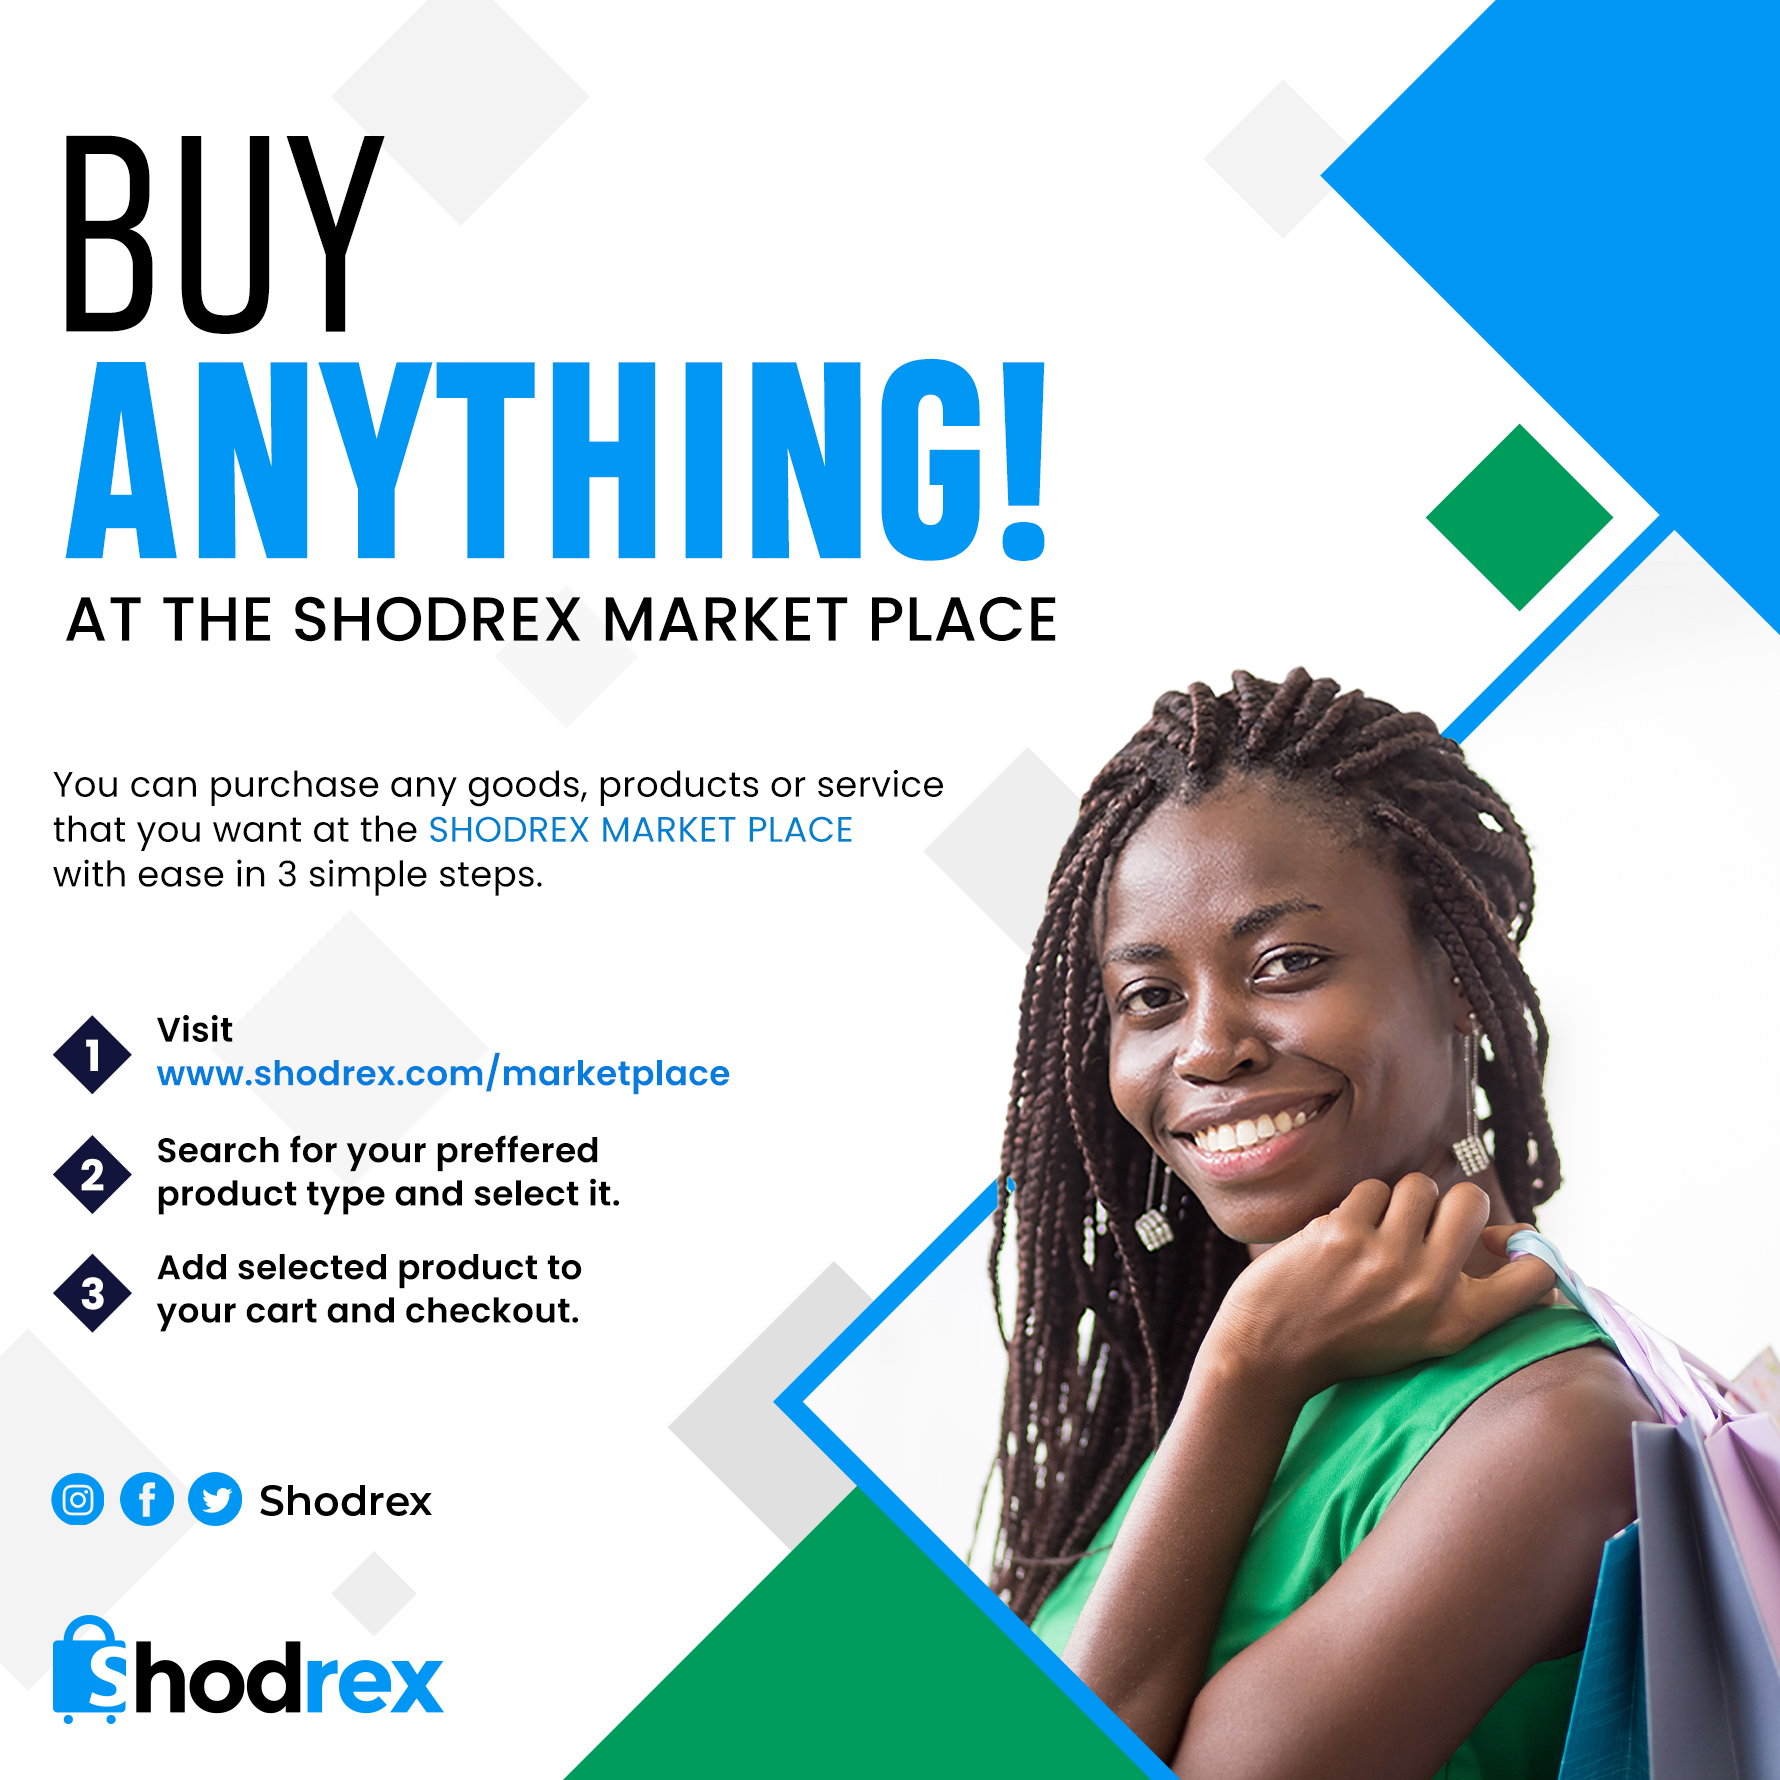 shodrex - buy anything.jpg